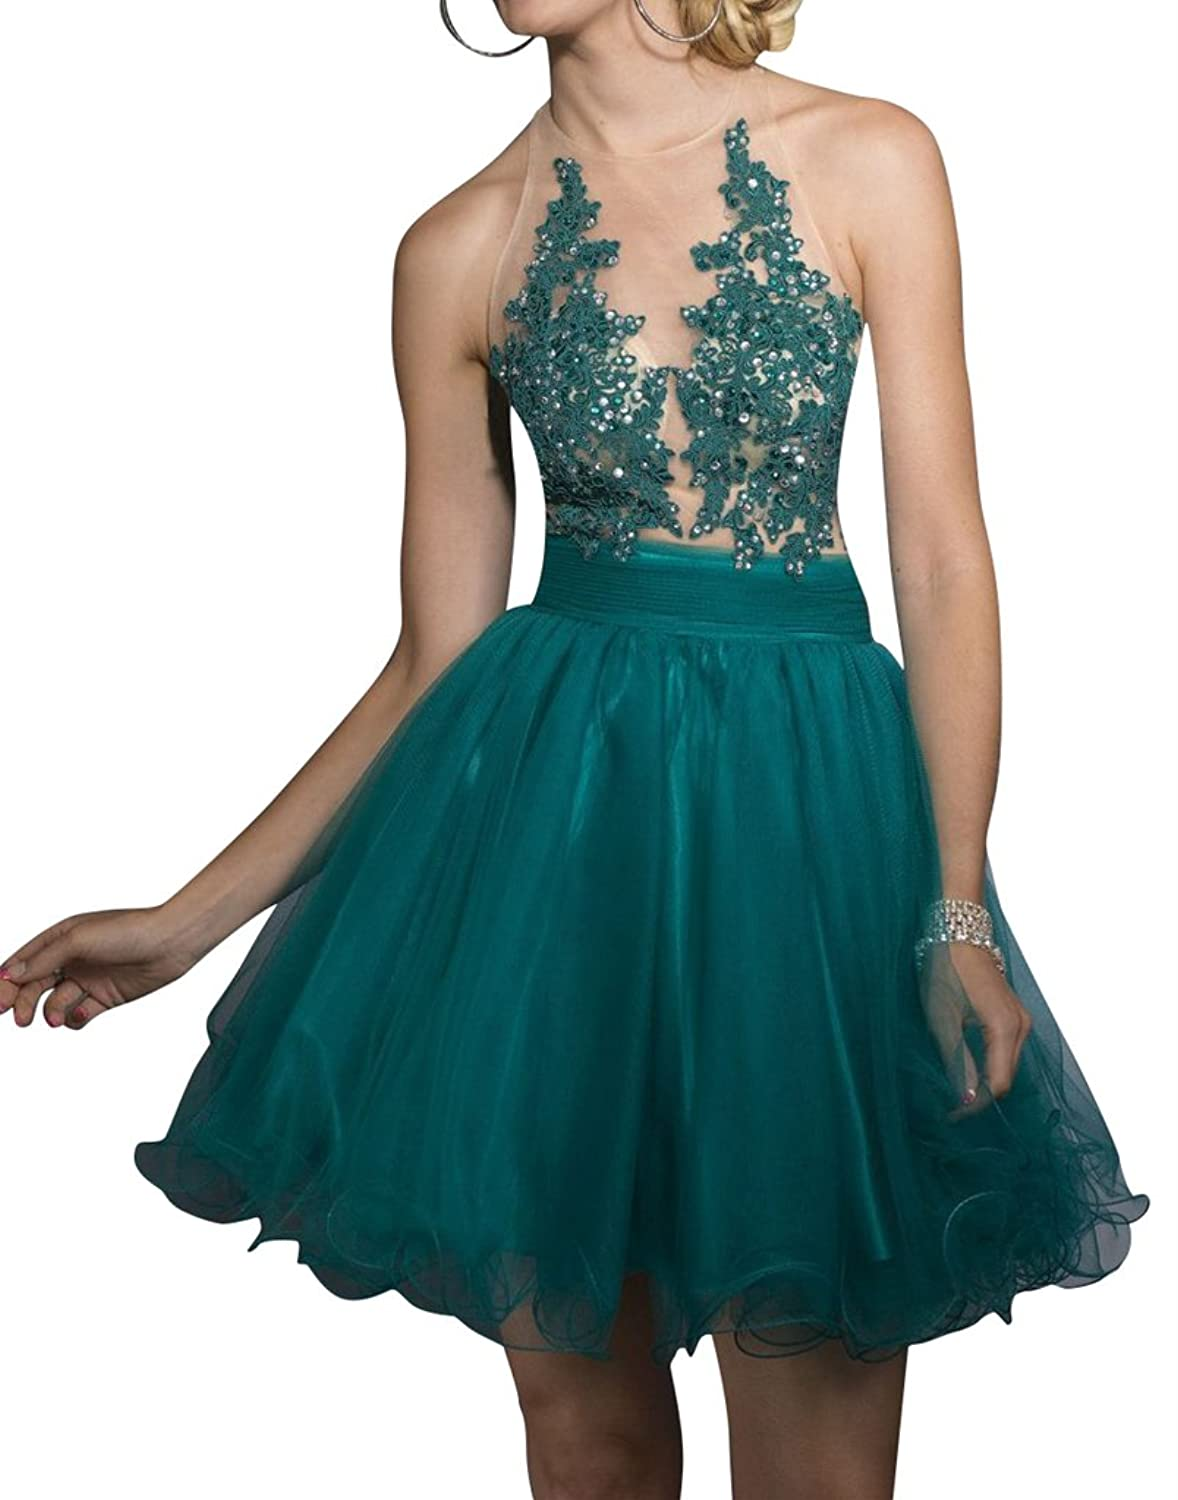 Fanmu Short Halter Neck Sleeveless Lace Beading Prom Dress Homecoming Cocktail Dress